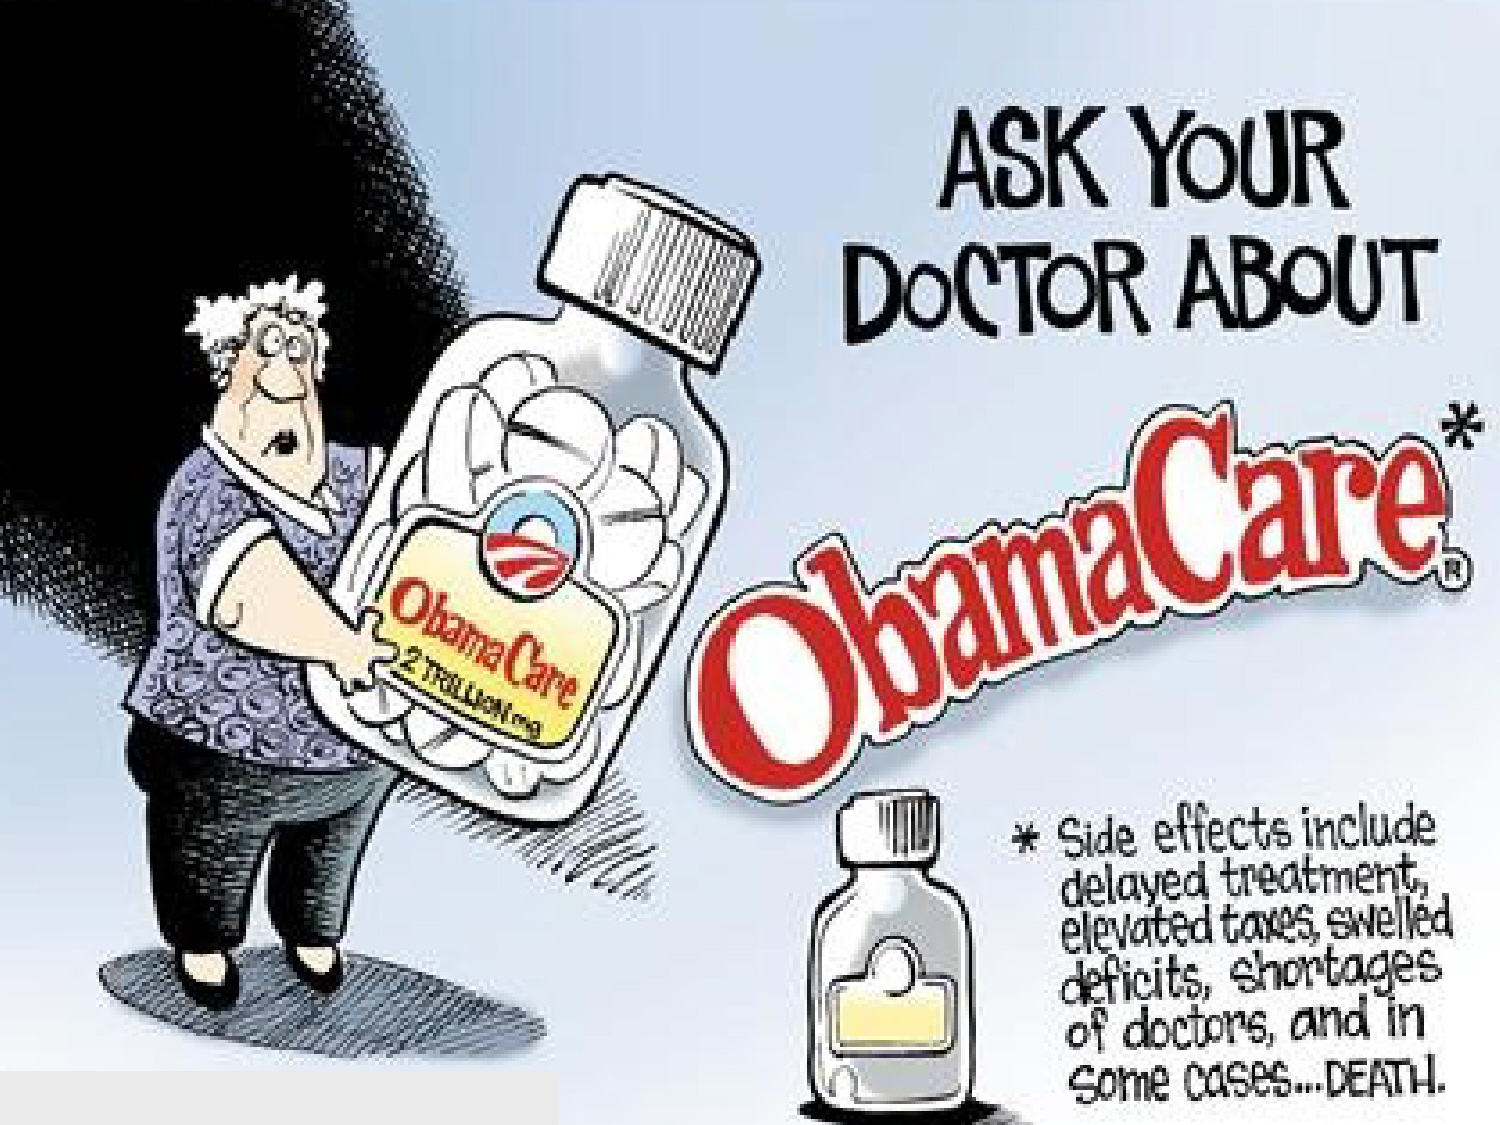 Obama care side effects 1a